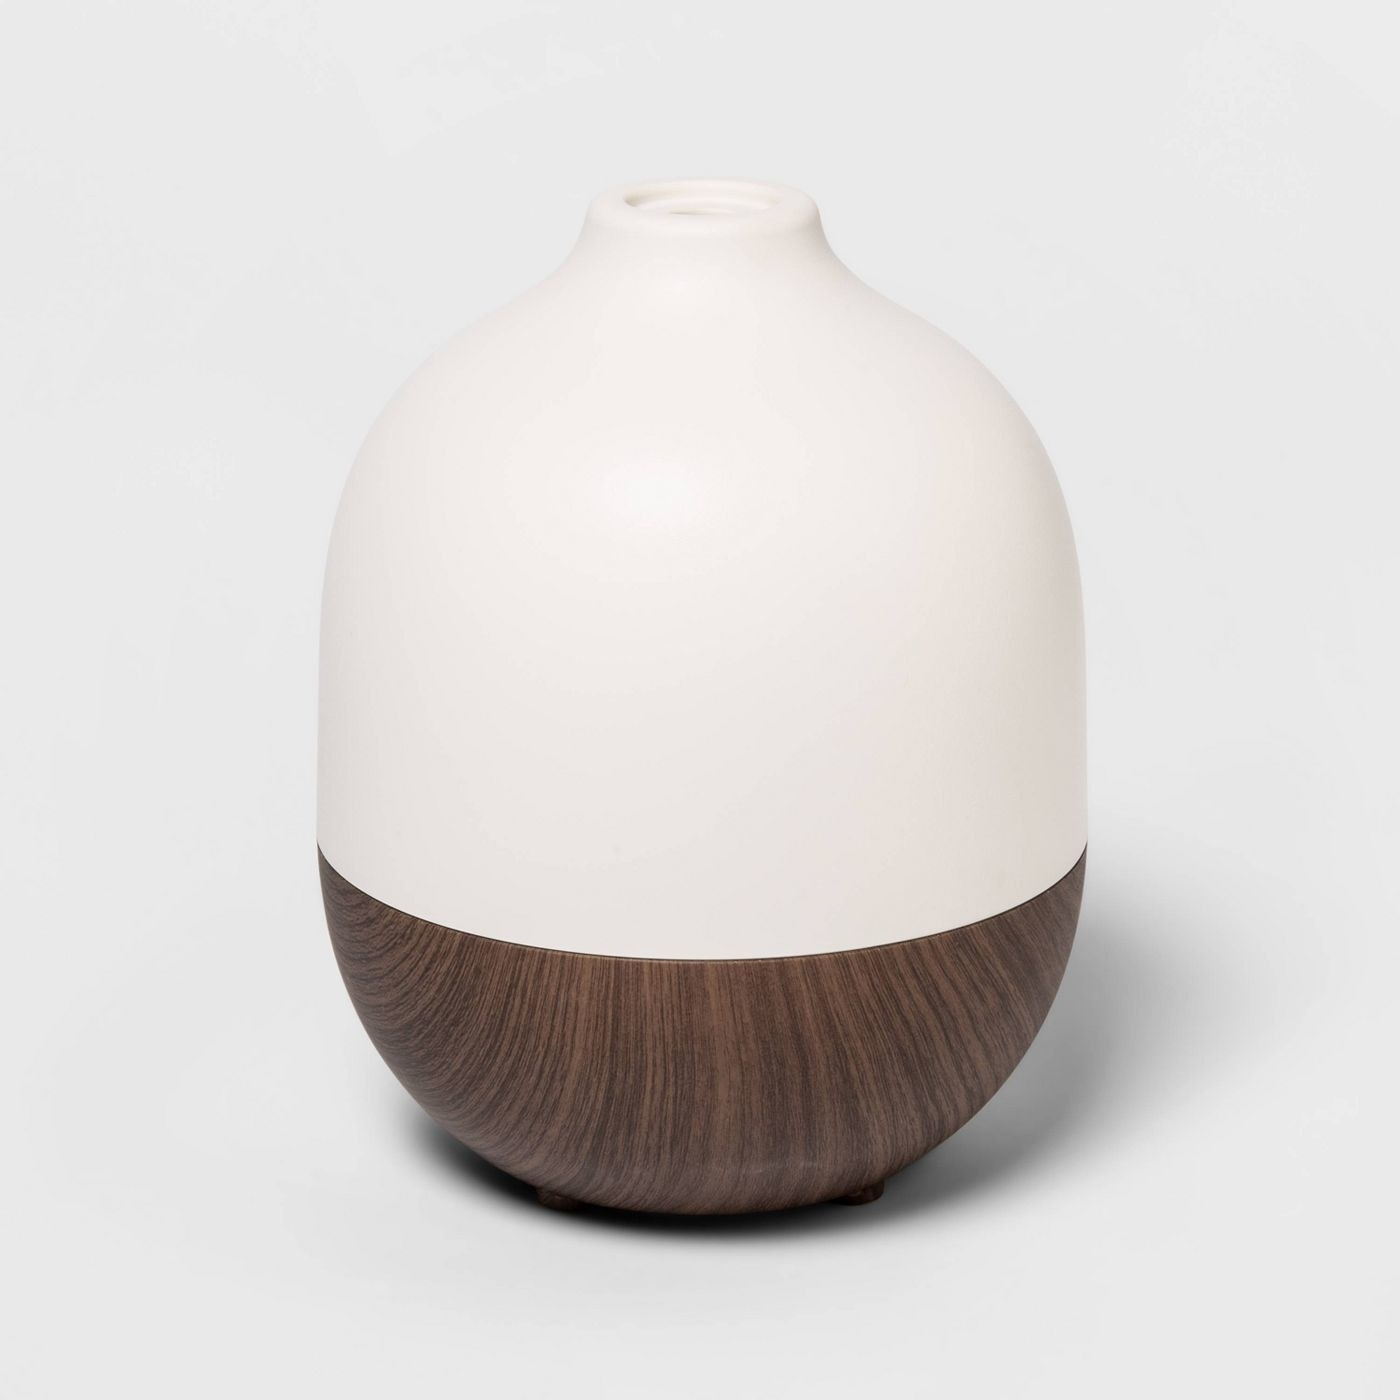 The diffuser, which has a woodgrain bottom, white top, and looks like a teardrop vase